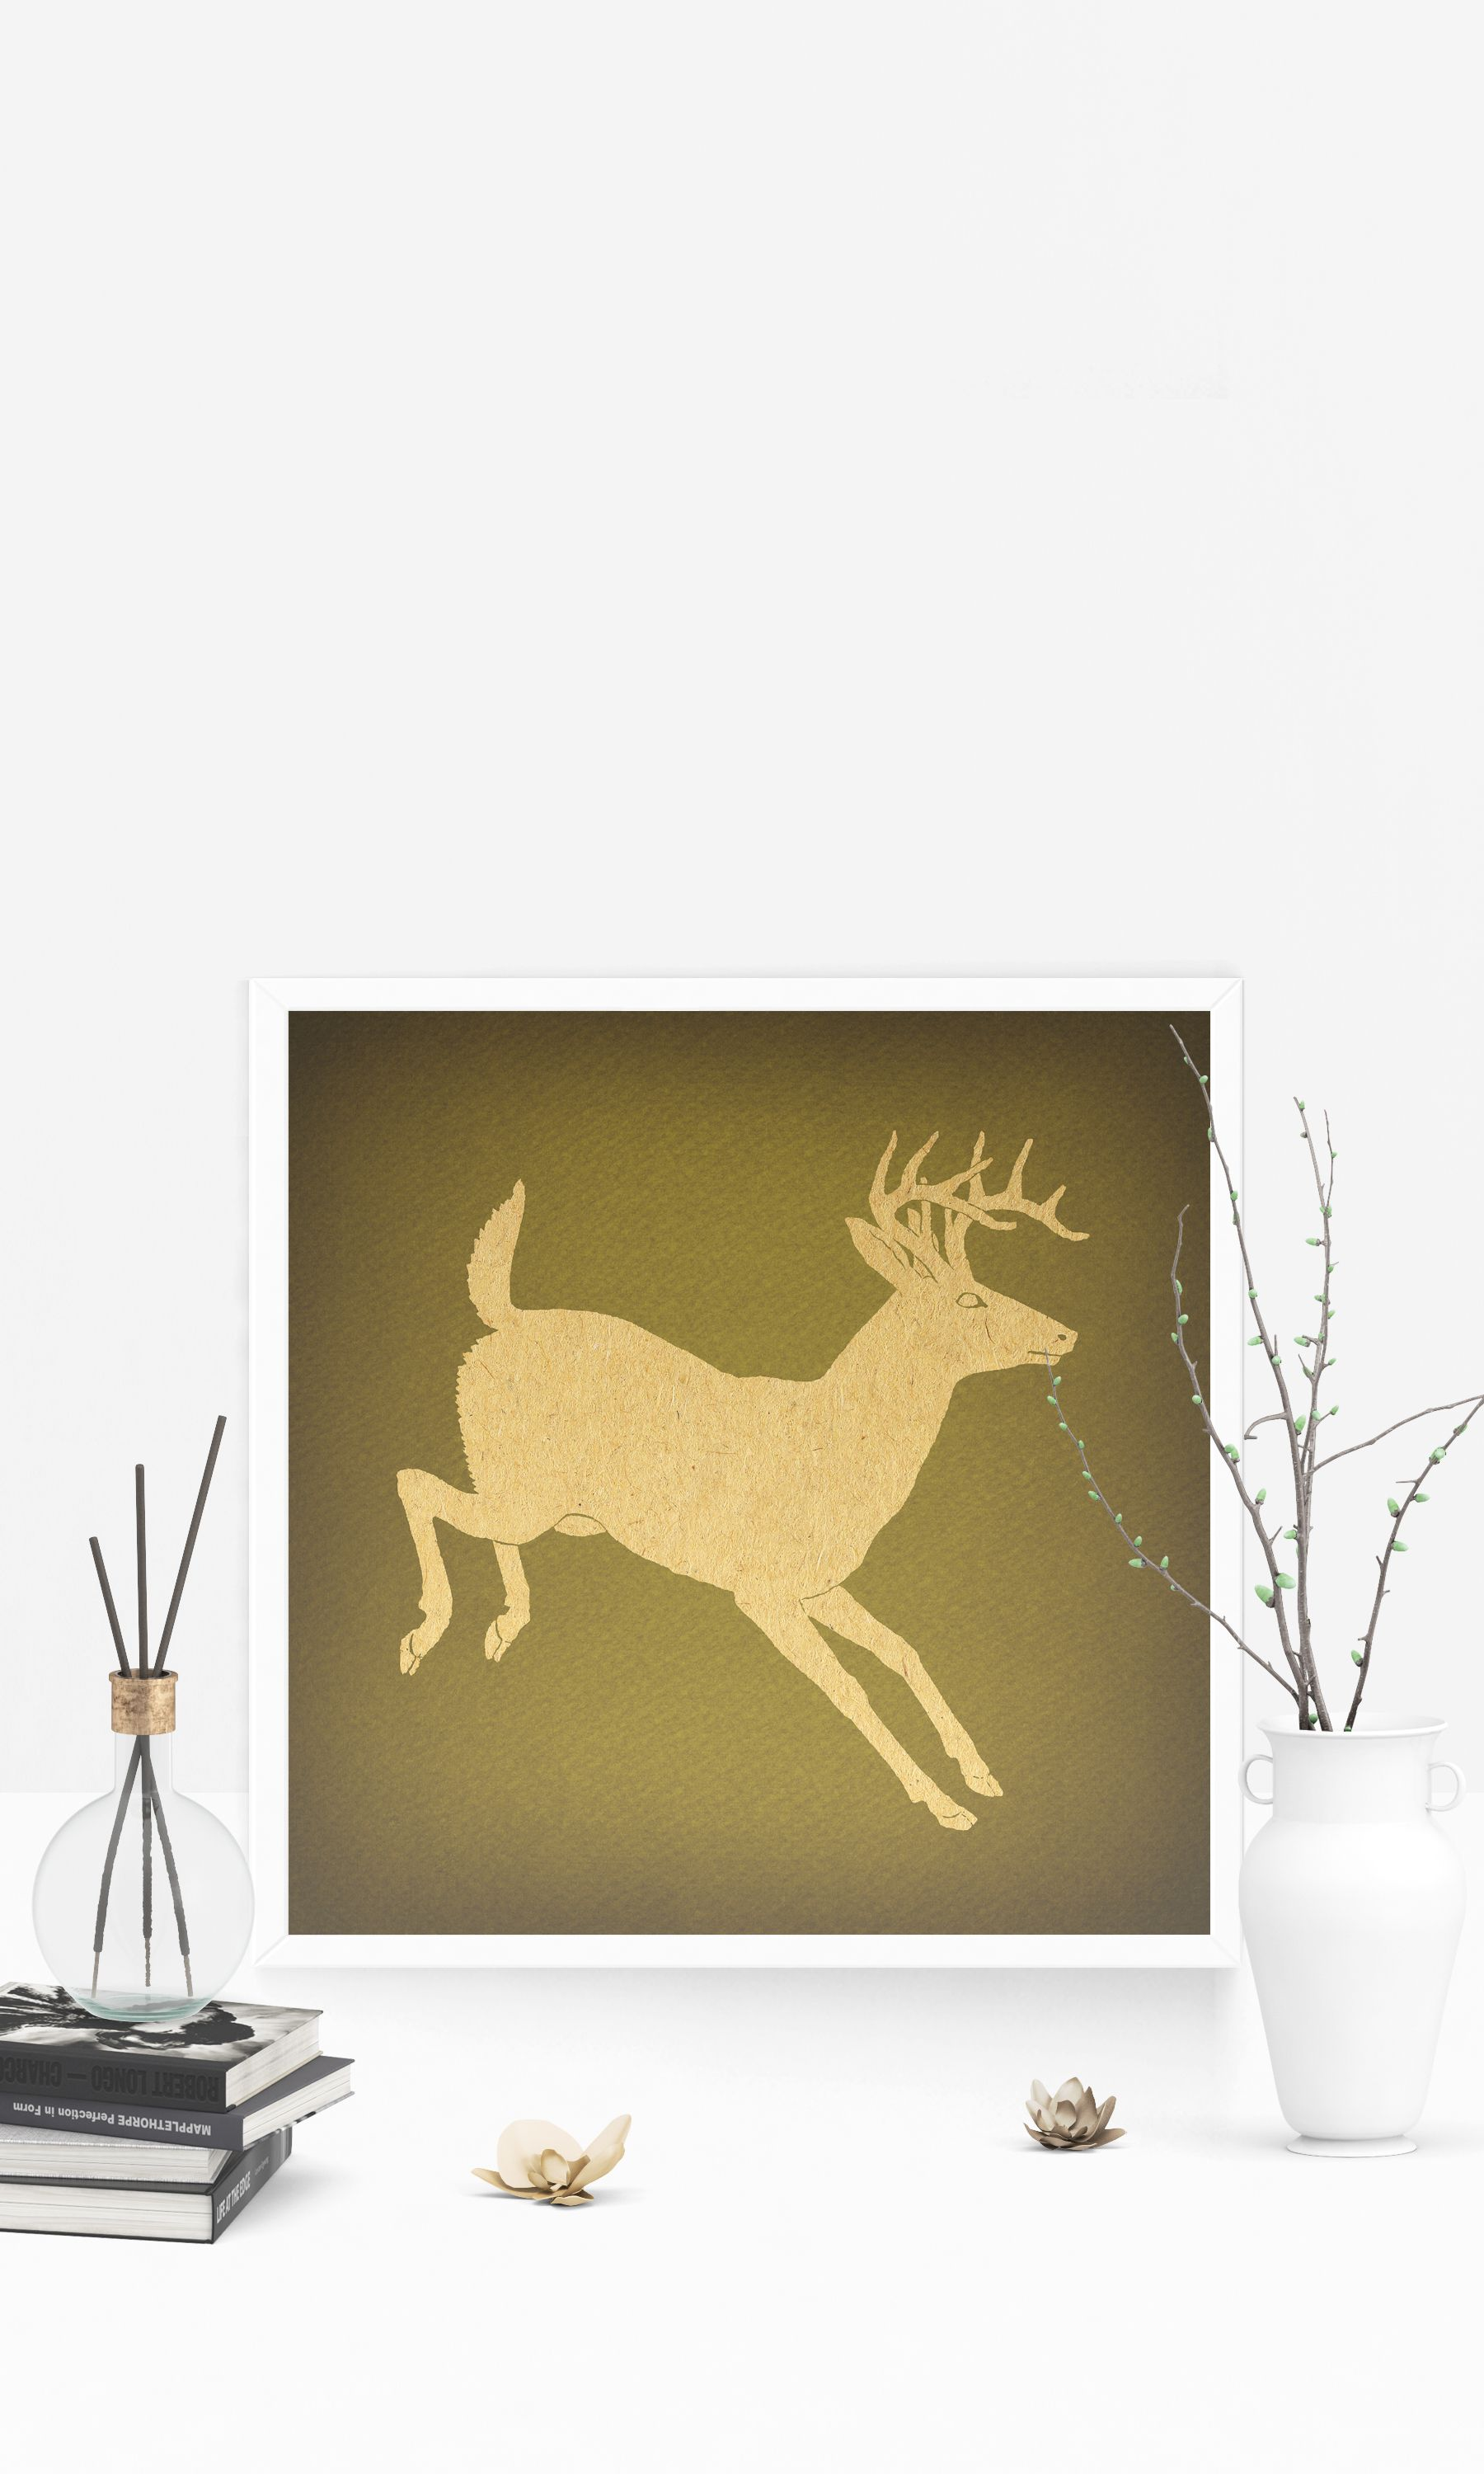 Vintage Deer Wall Art Print for Animal Themed Home Decoration ...